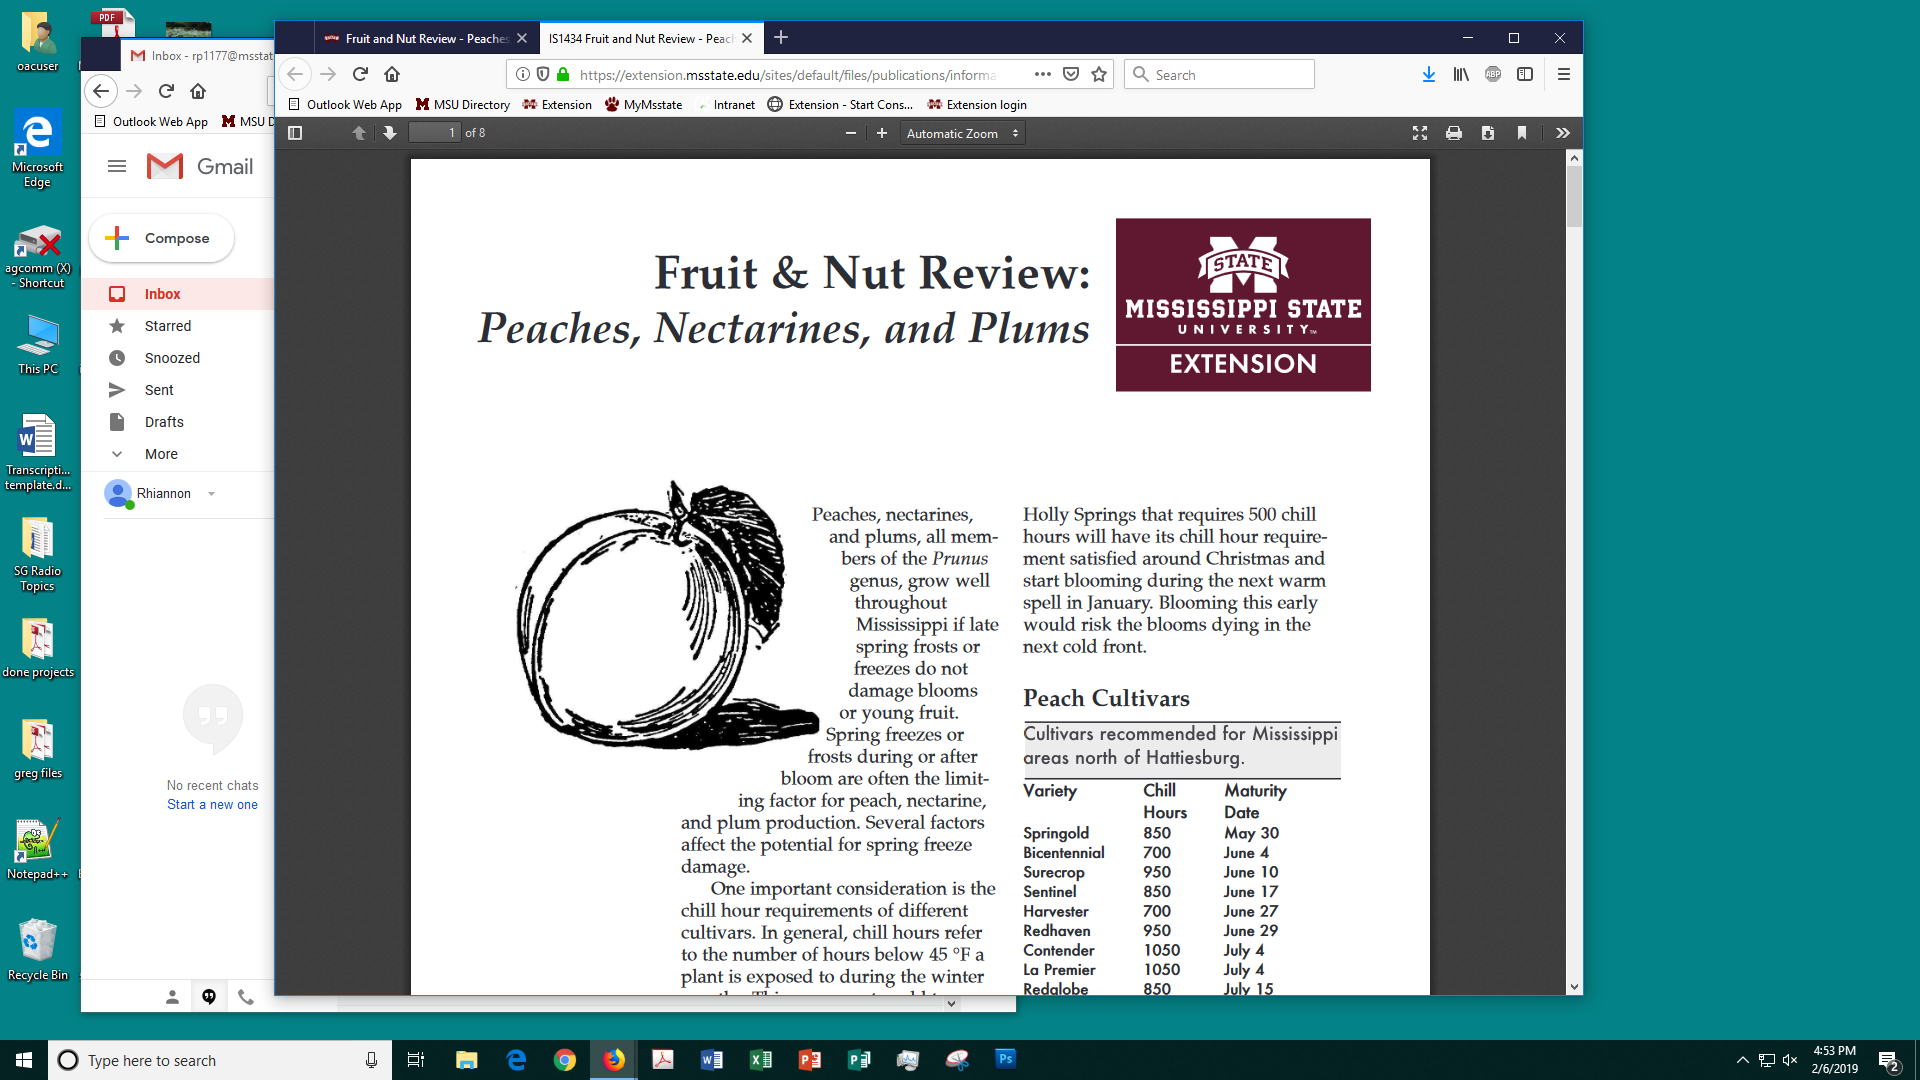 Fruit and Nut Review - Peaches, Nectarines, and Plums | Mississippi